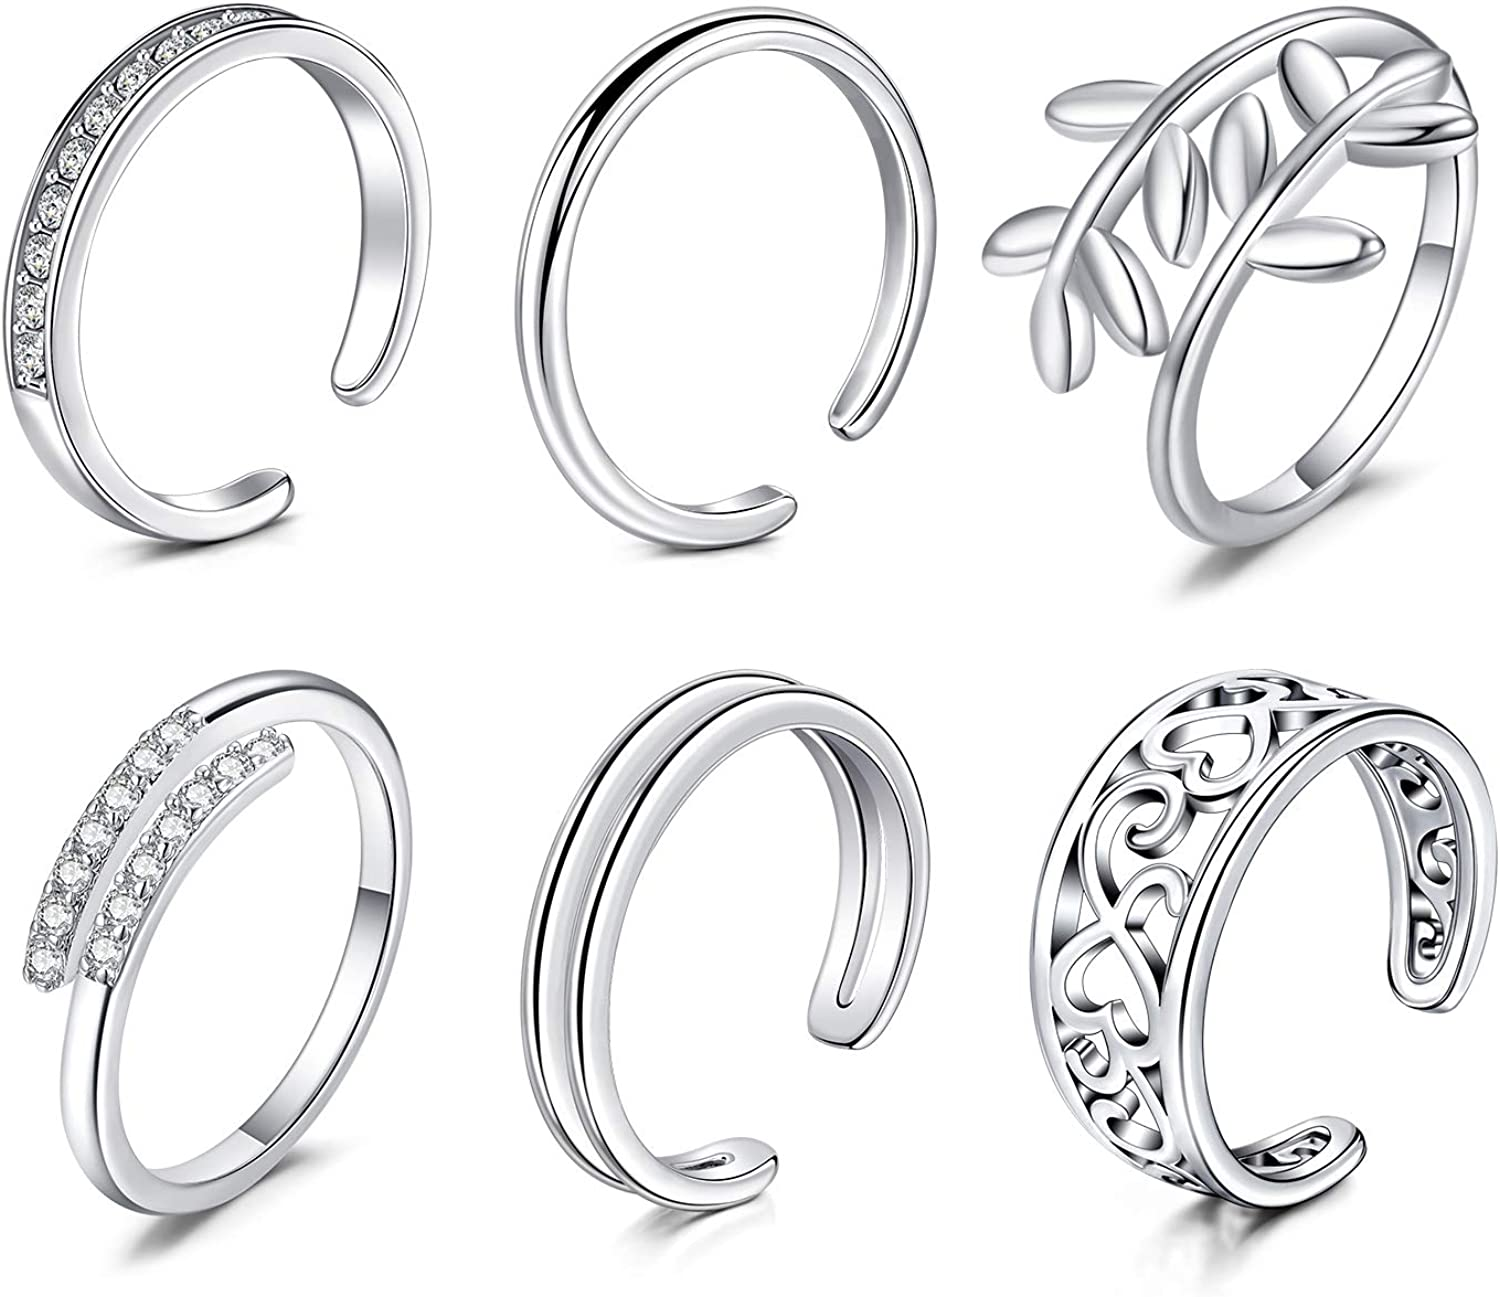 Longita Adjustable Silver Toe Rings for Women Stainless Steel Knuckle Tail Ring Simple Open Band Flower Diamond Fingers Joint Hypoallergenic Sandals Foot Jewelry